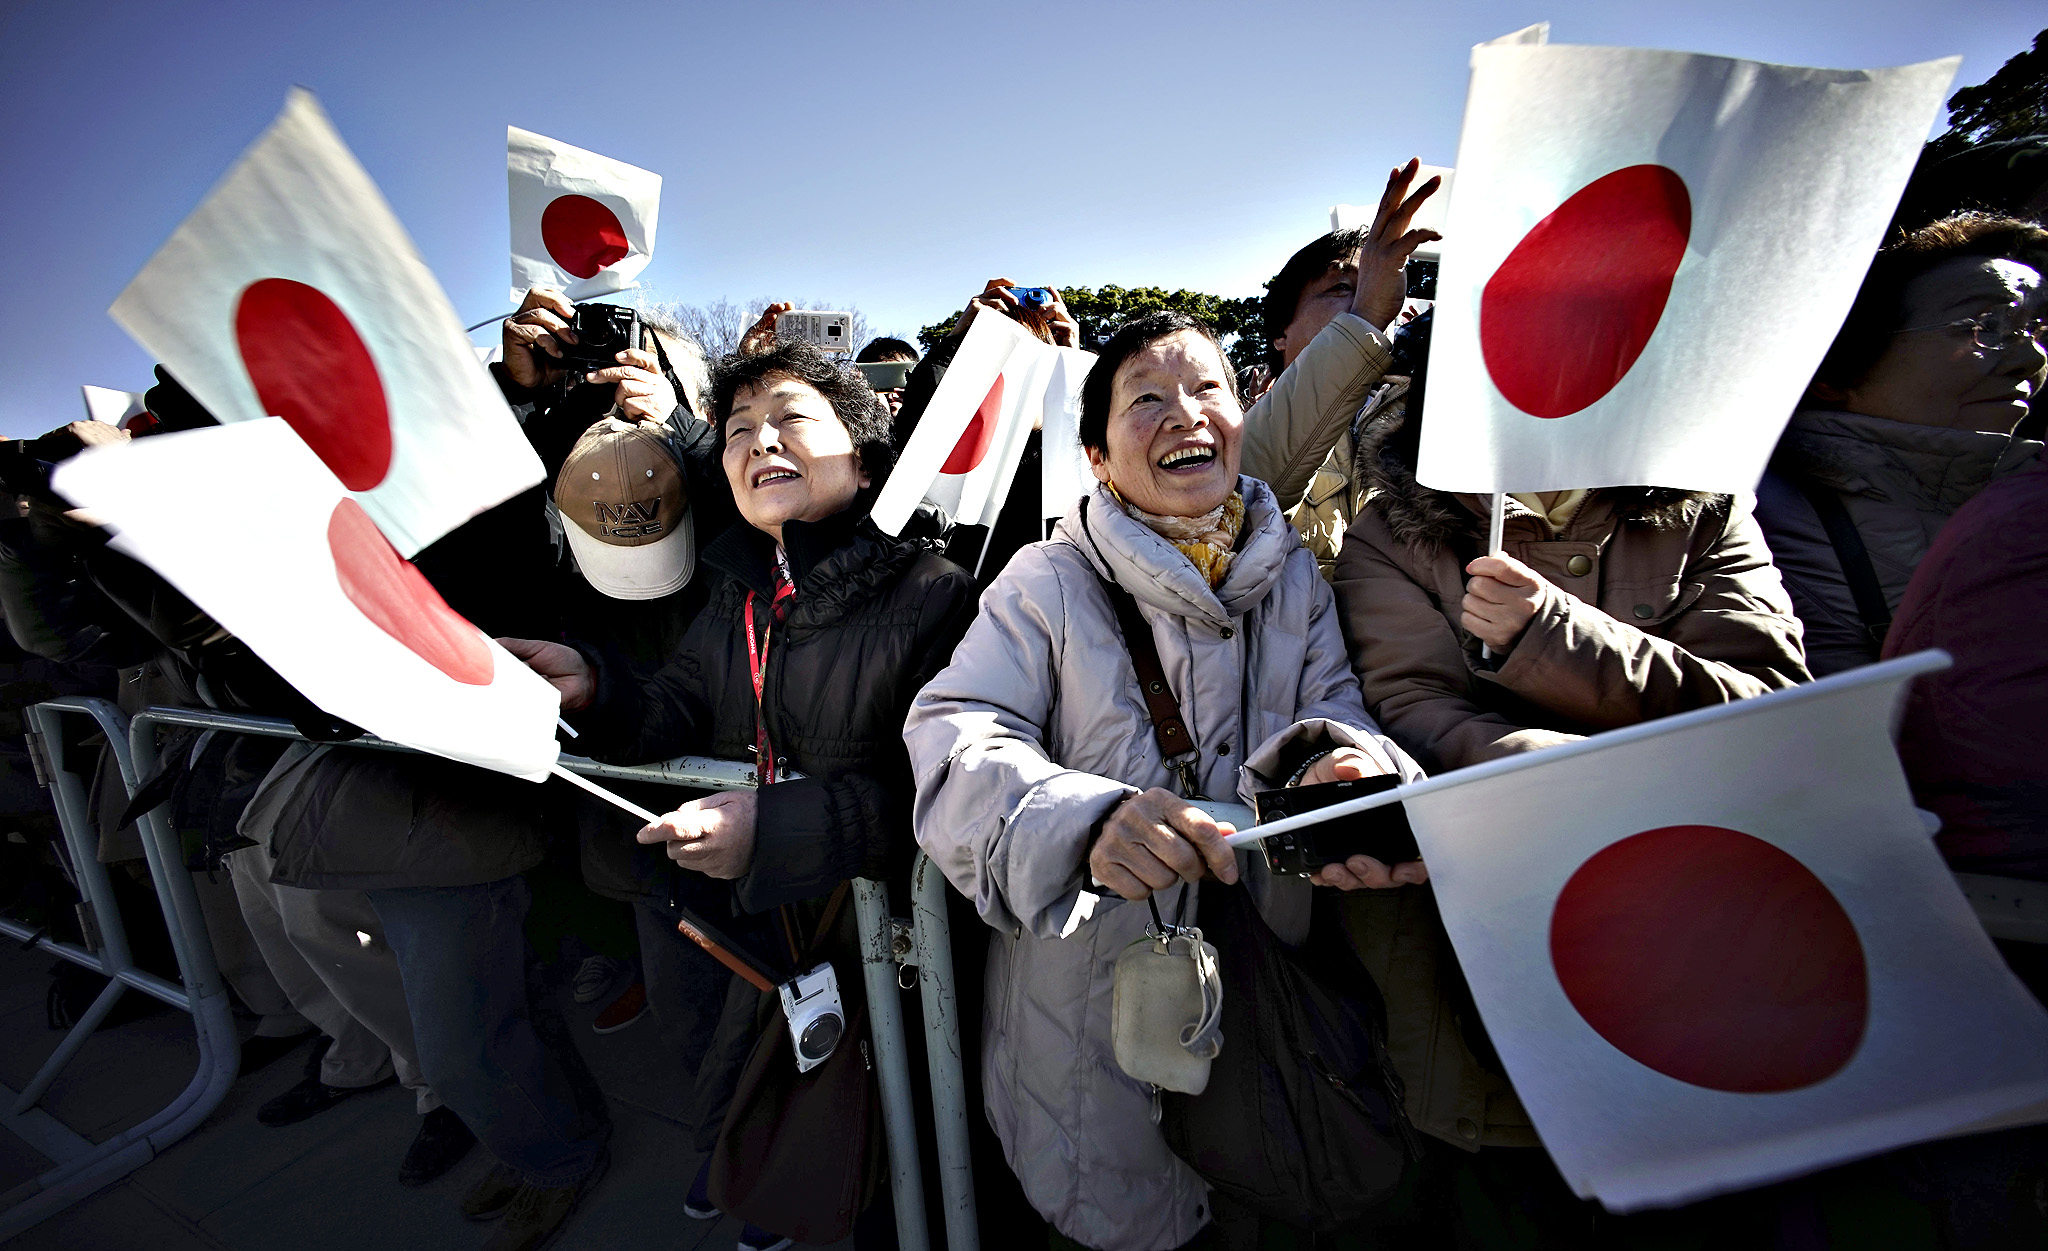 Well-wishers wave Japanese flags to celebrate Japan's Emperor Akihito's 81st birthday at the Imperial Palace in Tokyo, Tuesday, Dec. 23, 2014. Emperor Akihito said he  ardently  hoped Japan will strive hard as a peaceful country, as he celebrated his 81th birthday Tuesday ahead of the 70th anniversary of the end of World War II next year.